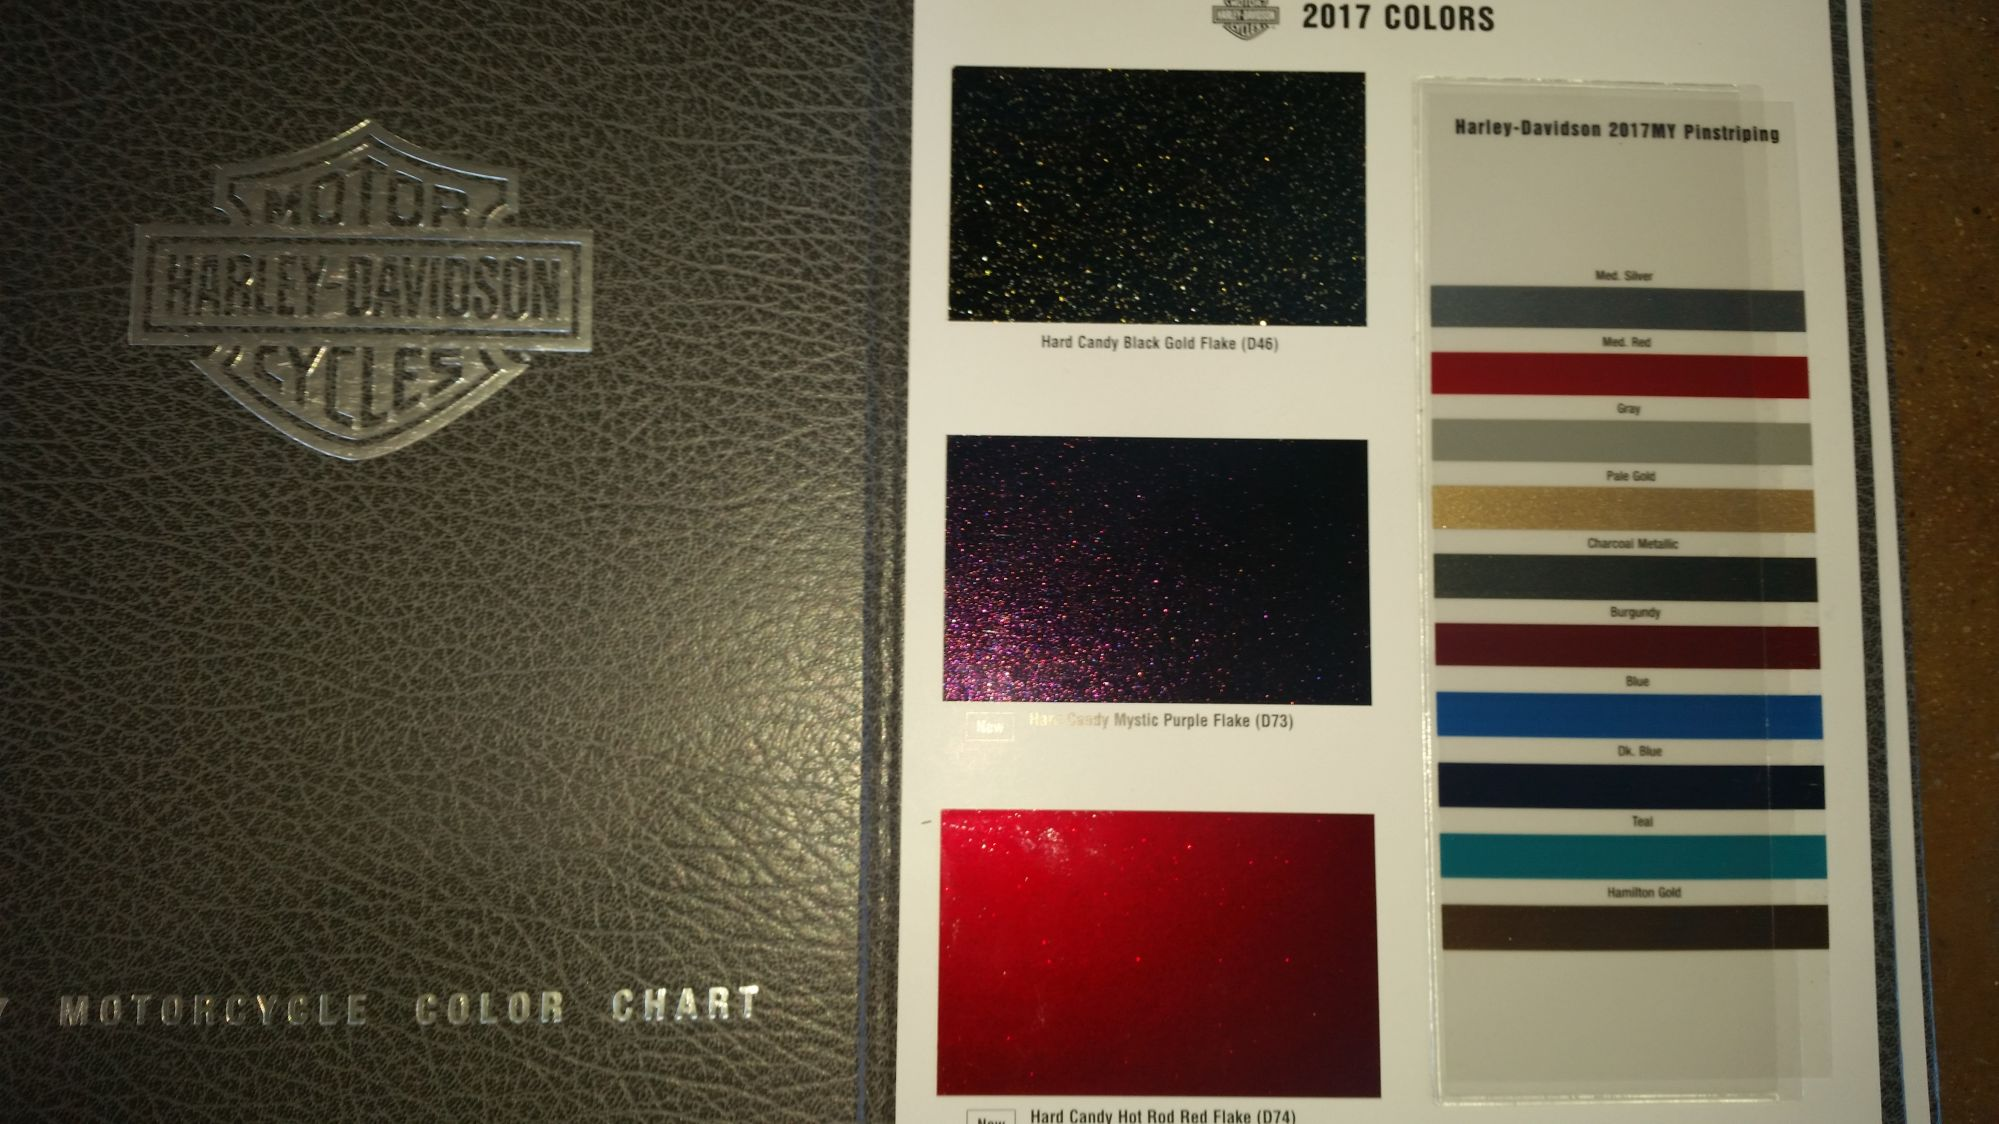 Harley Davidson Color Codes